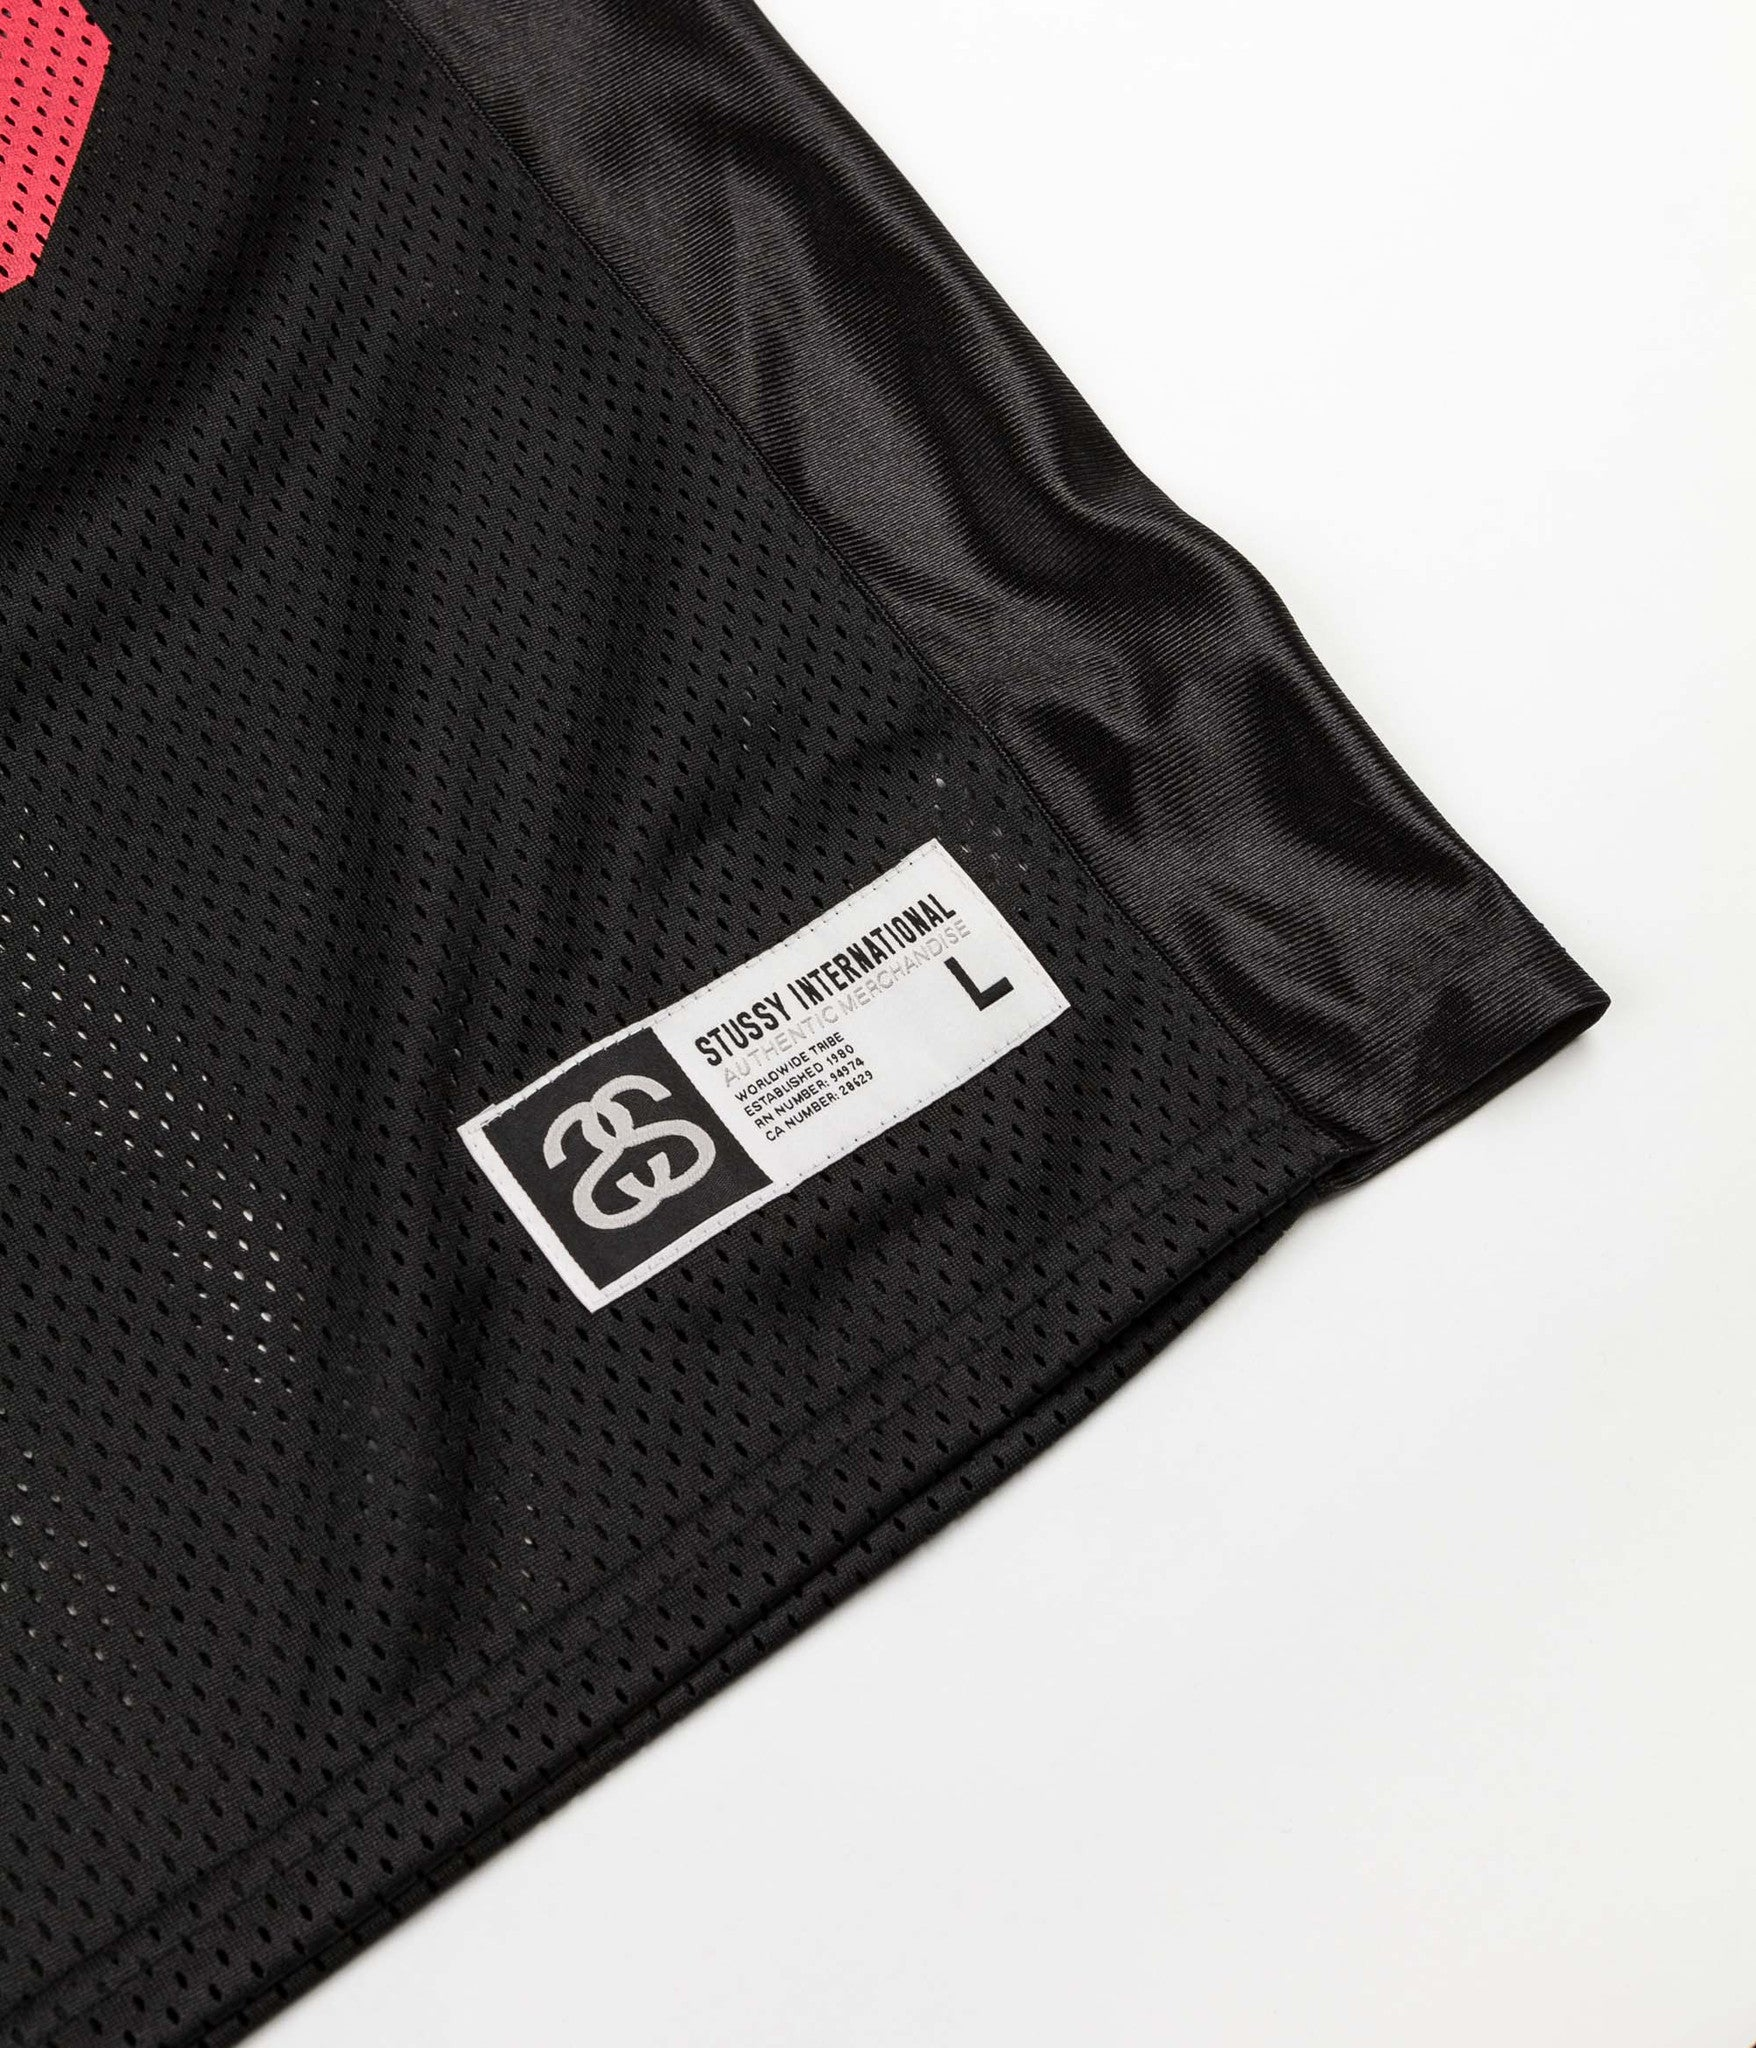 Stussy IST Football Short Sleeve Mesh Jersey - Black